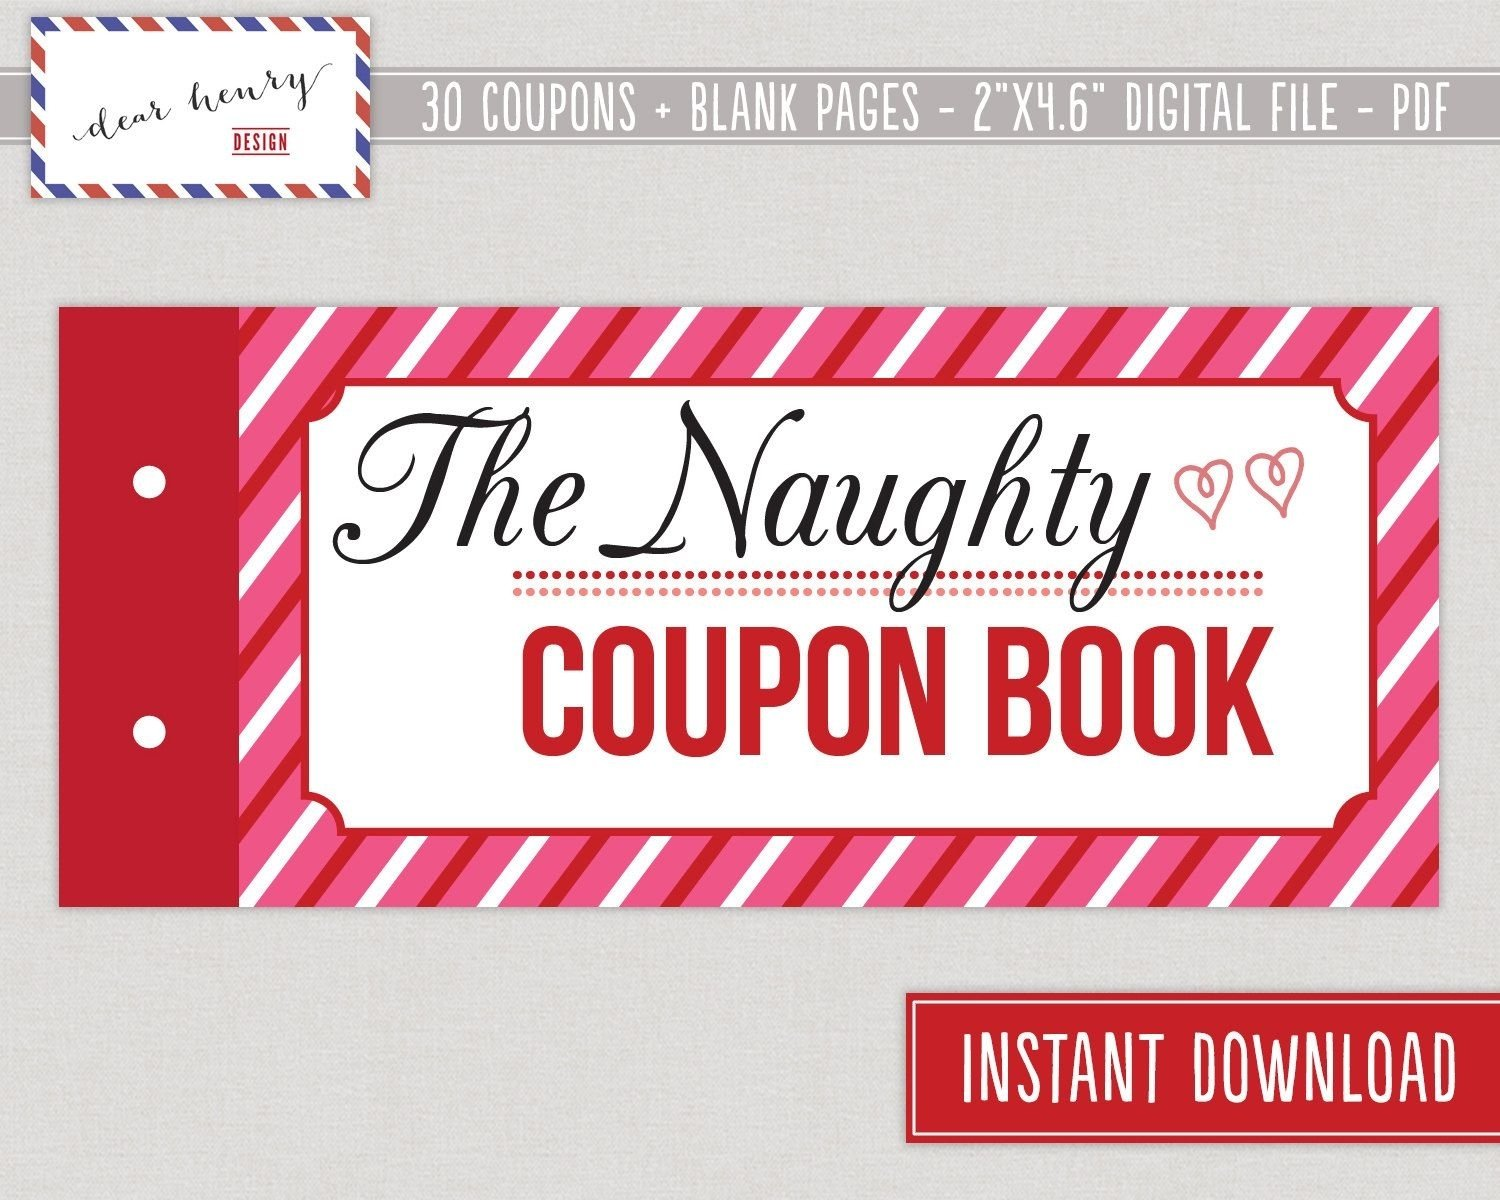 10 Wonderful Coupon Book Ideas For Girlfriend mature sexy printable valentines day coupondearhenrydesign 2021